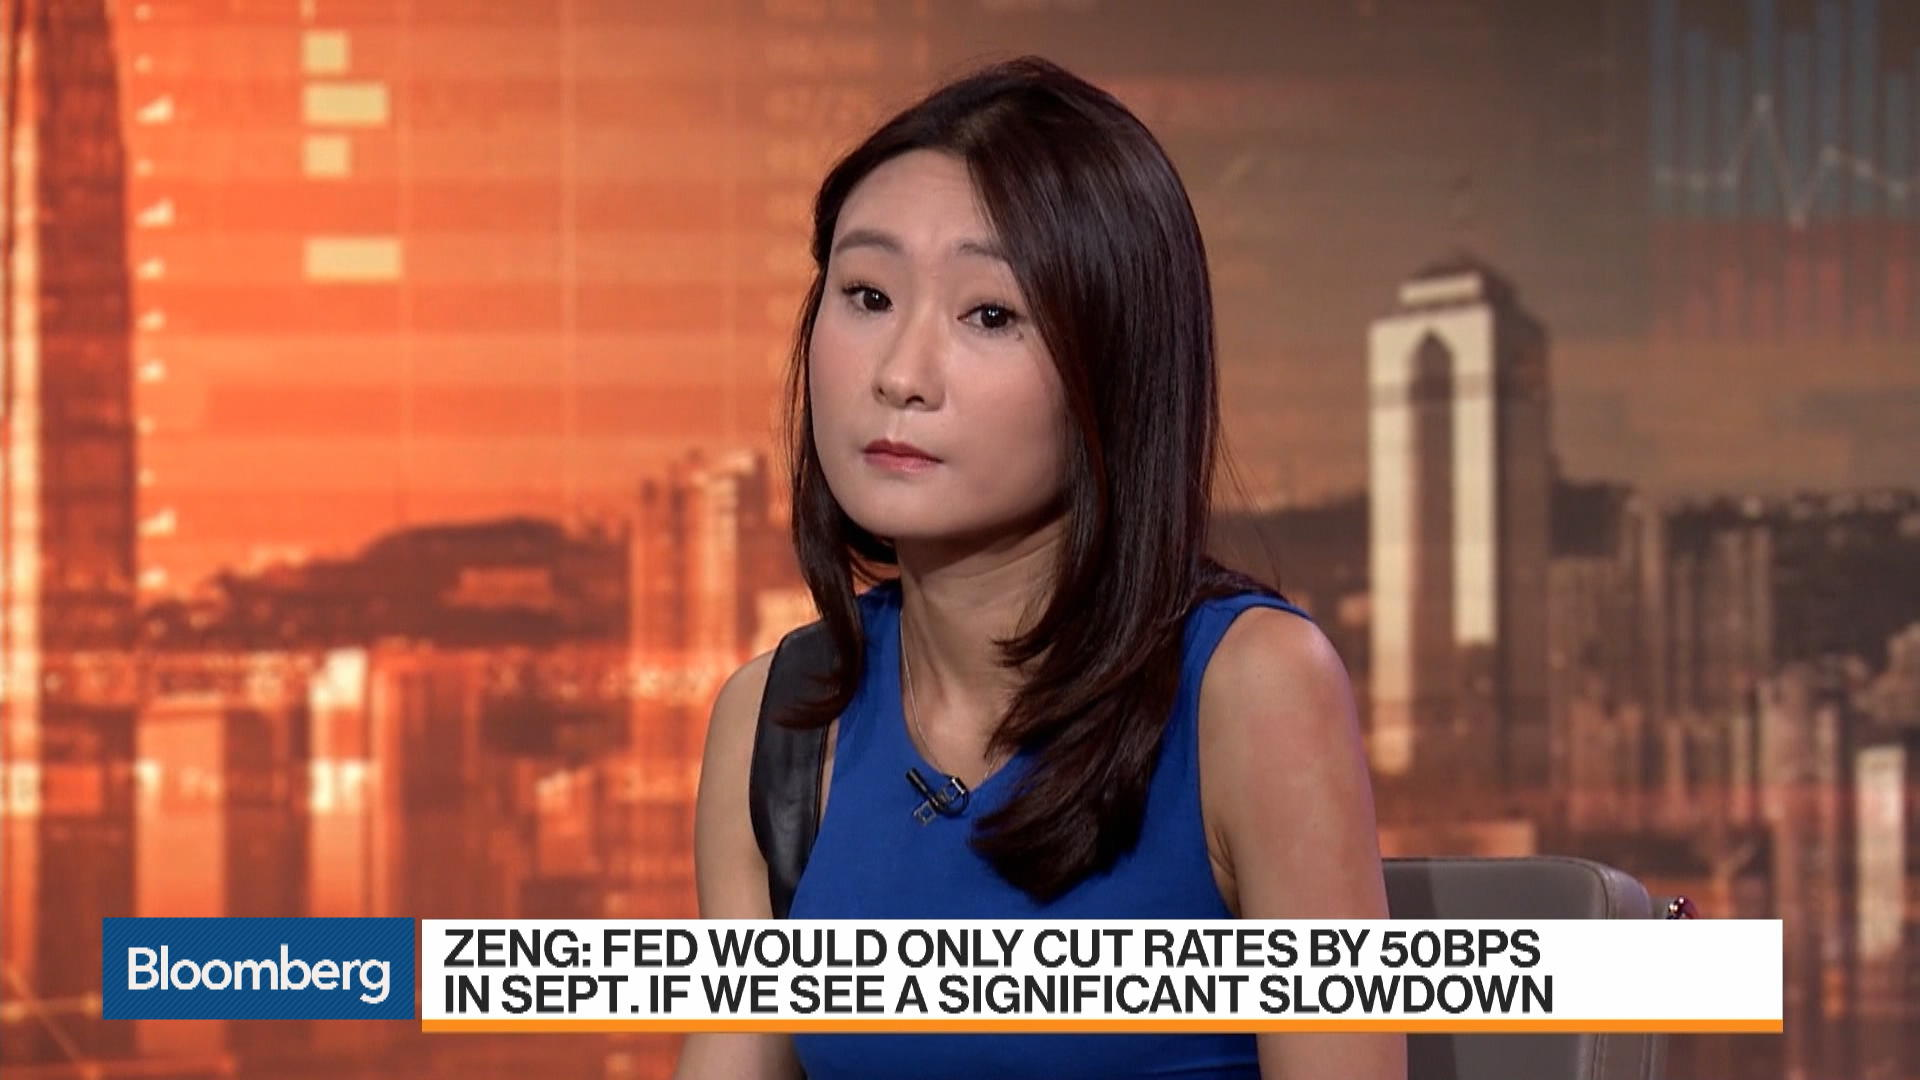 AllianceBernstein's Jenny Zeng of Asia Pacific Fixed Income on Fed Policy, Treasuries, Bond Market